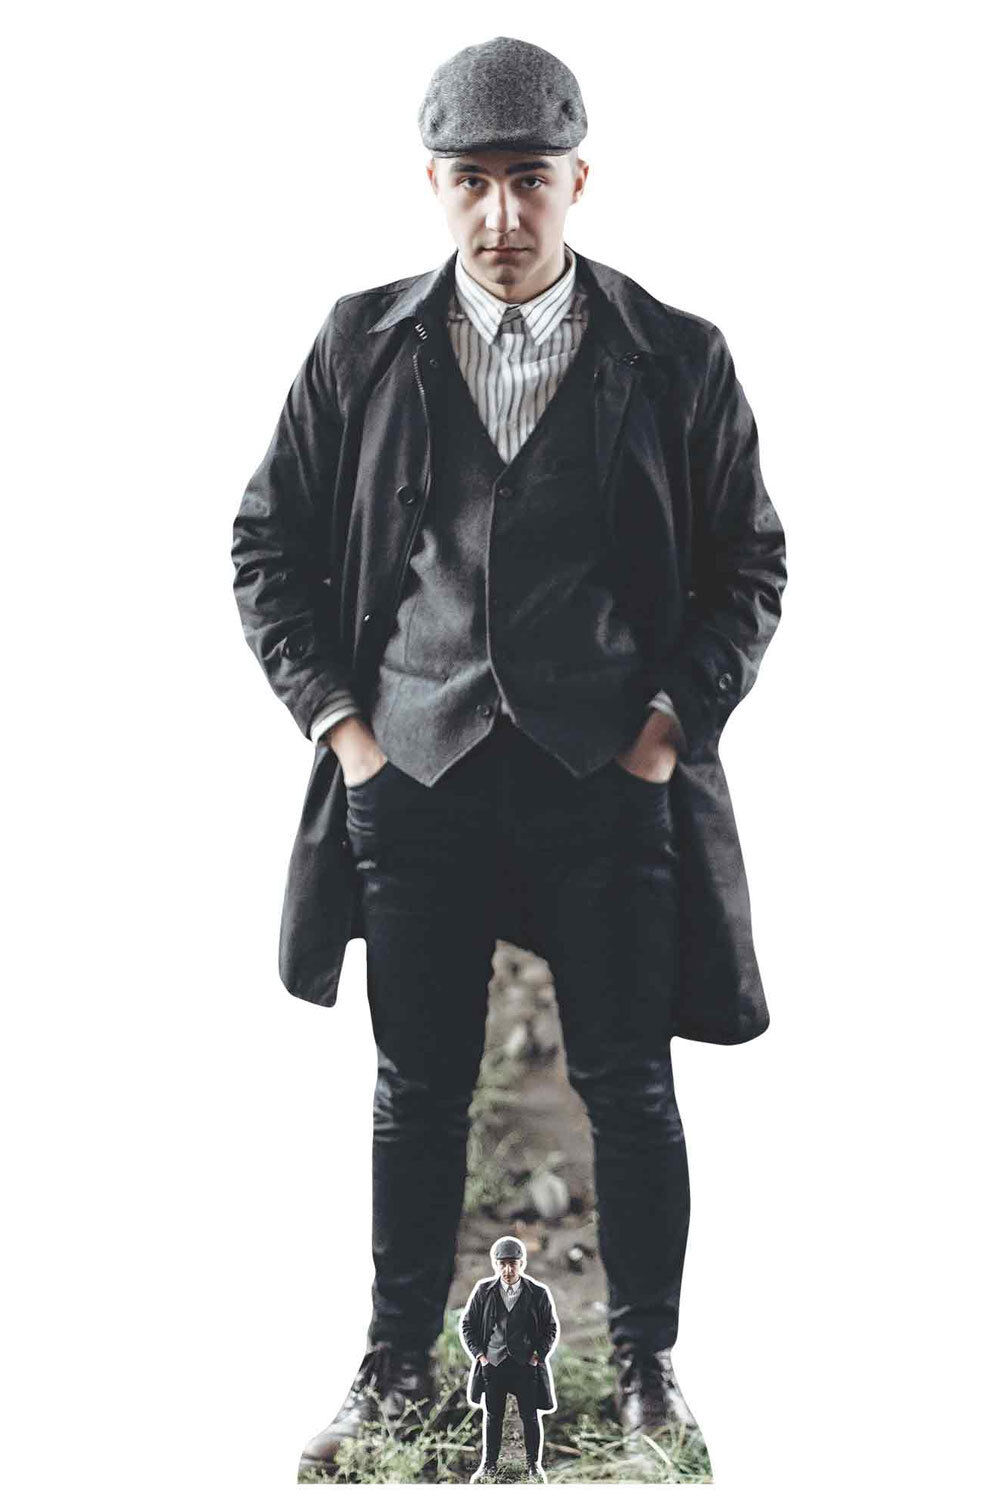 Peaky Blinder Style Gangster with Striped Shirt Cardboard Cutout   Standup